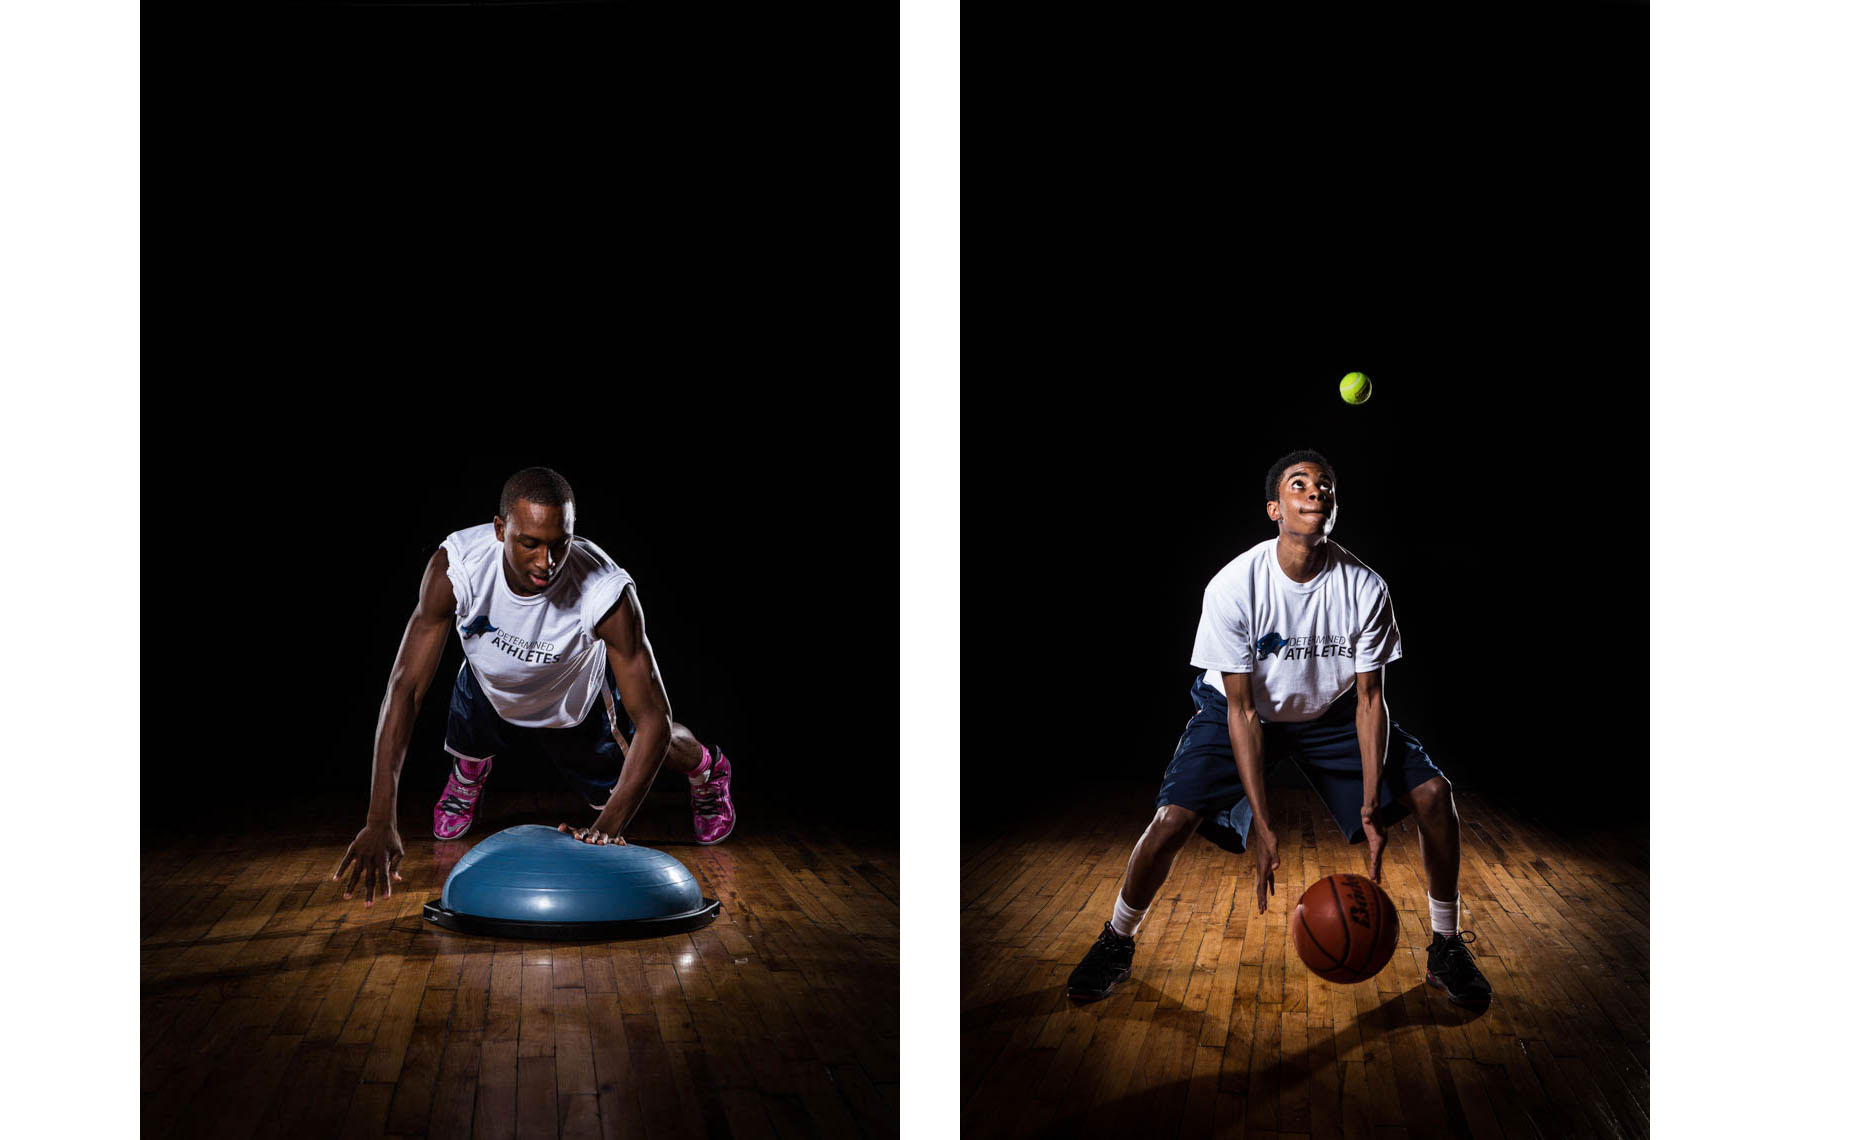 Philadelphia-Photographer-Determined-Athlete-Agility-Drill